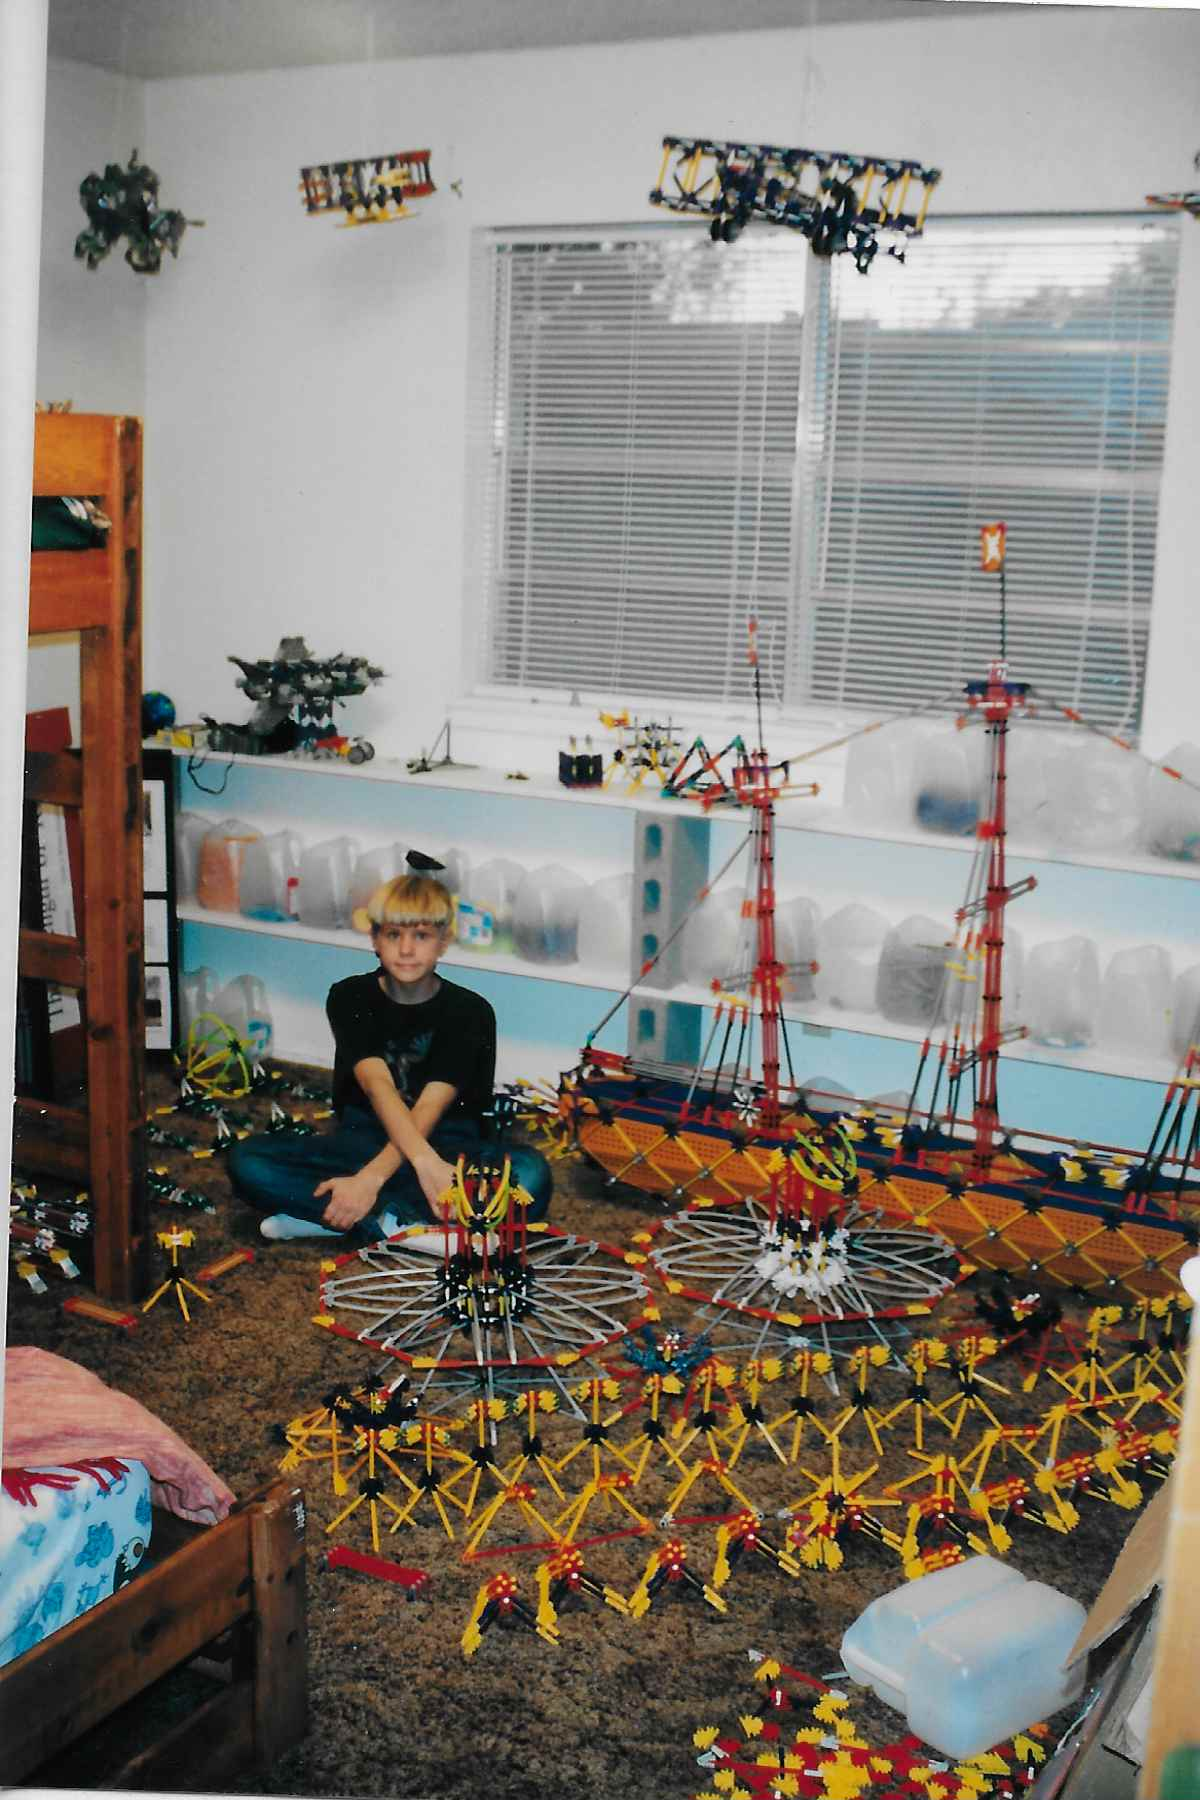 Nicholas with K'NEX in his bedroom in the Brown House.